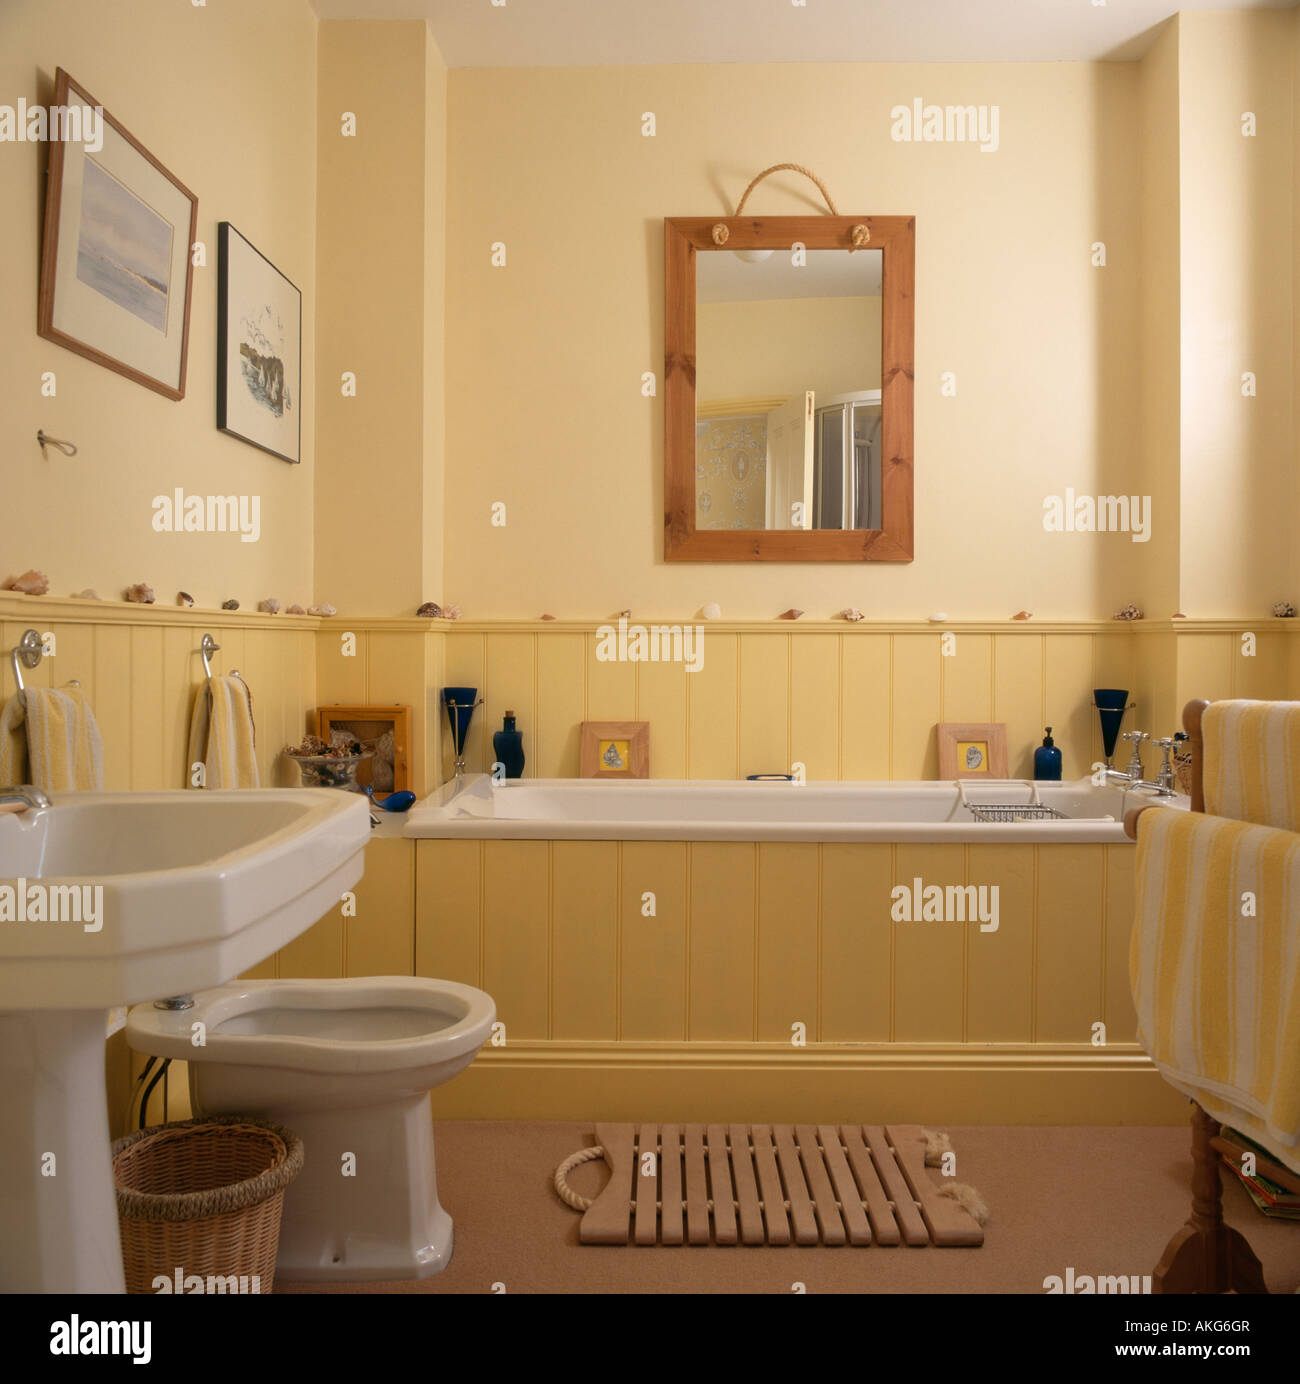 wooden mirror above dado panelling and panelled bath in